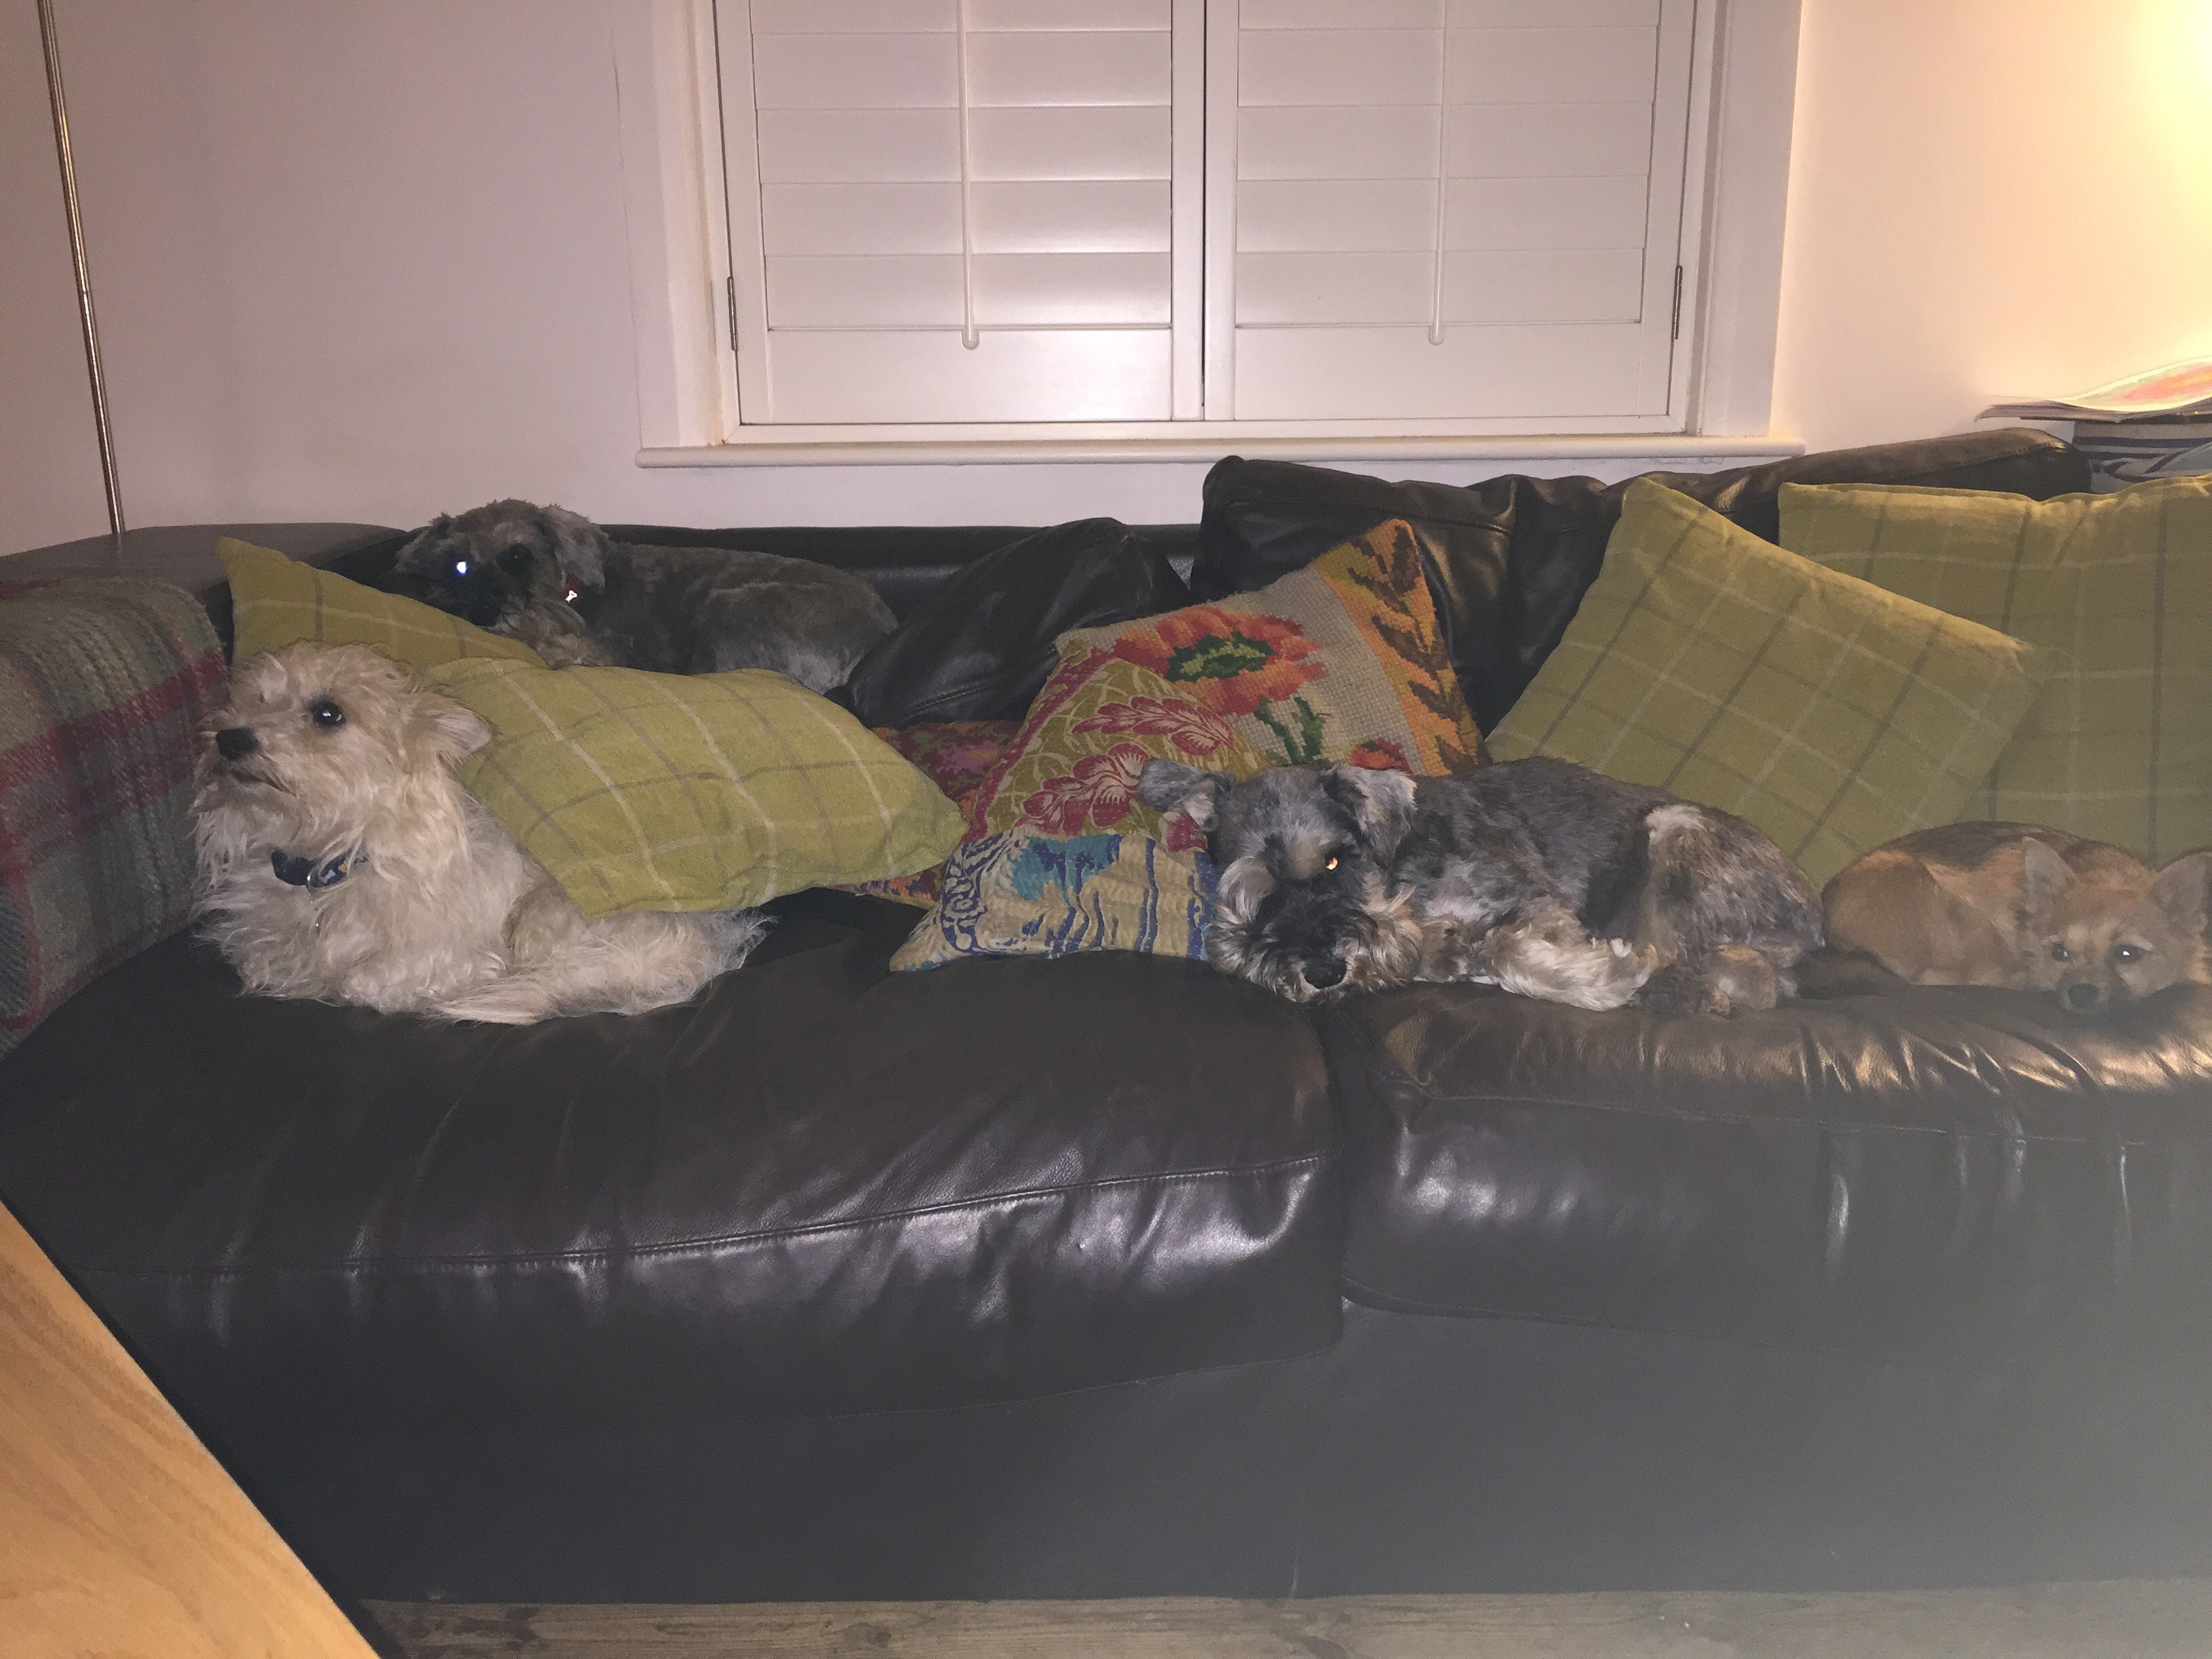 4 dogs 1 sofa 0 humans